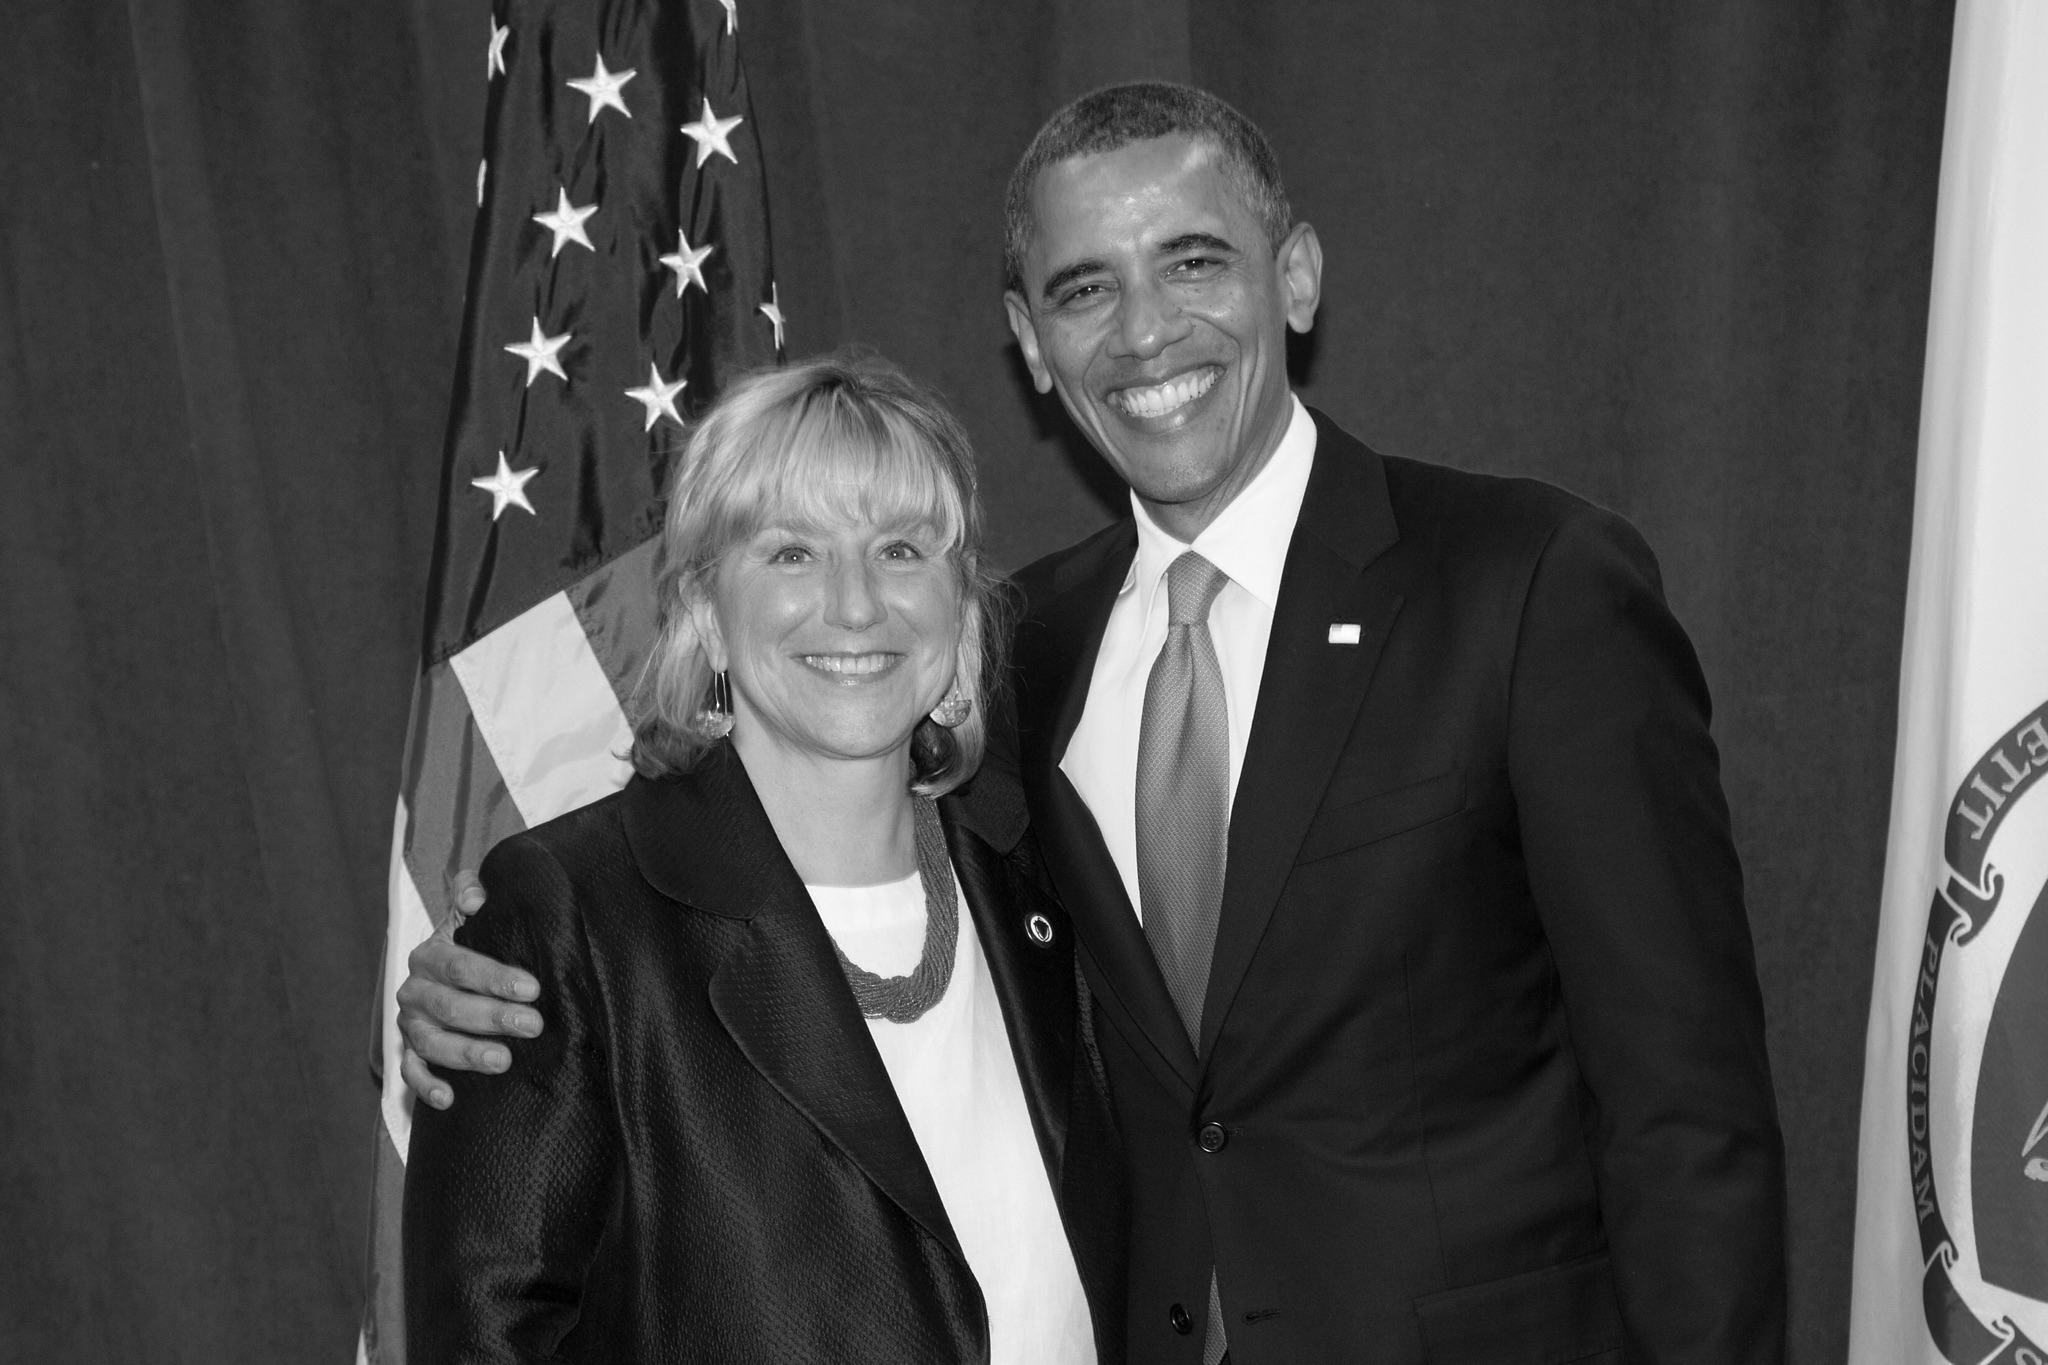 KES and Obama_bw.jpg